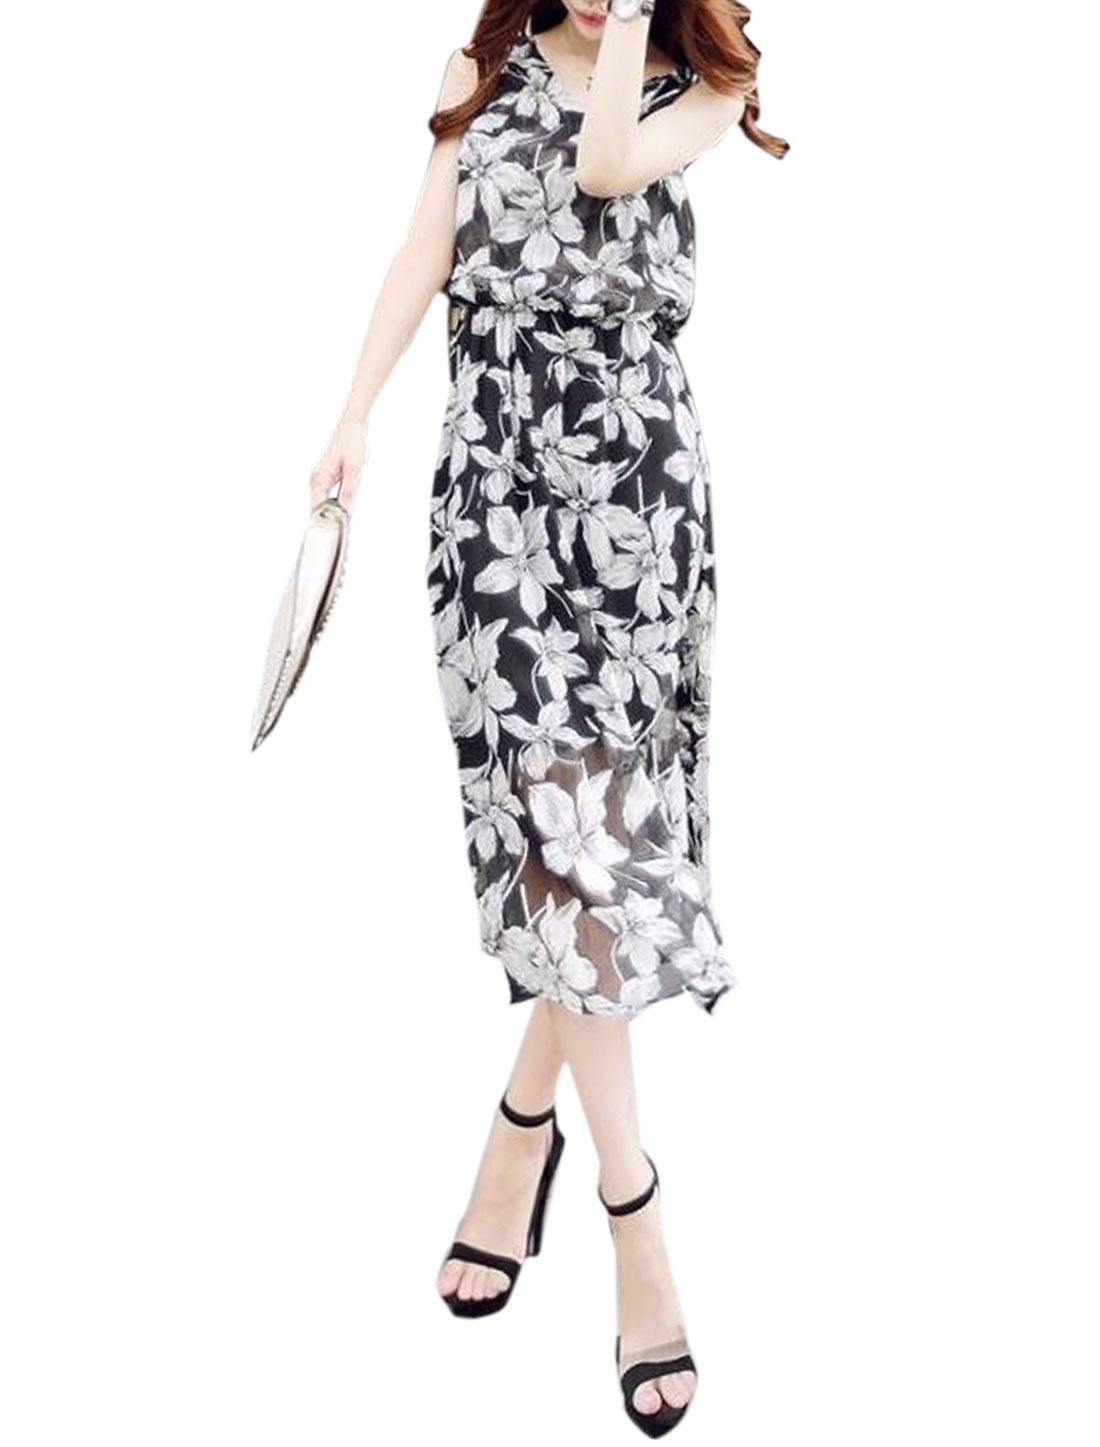 Women Floral Print Fully Lined Casual Dresses Black White M